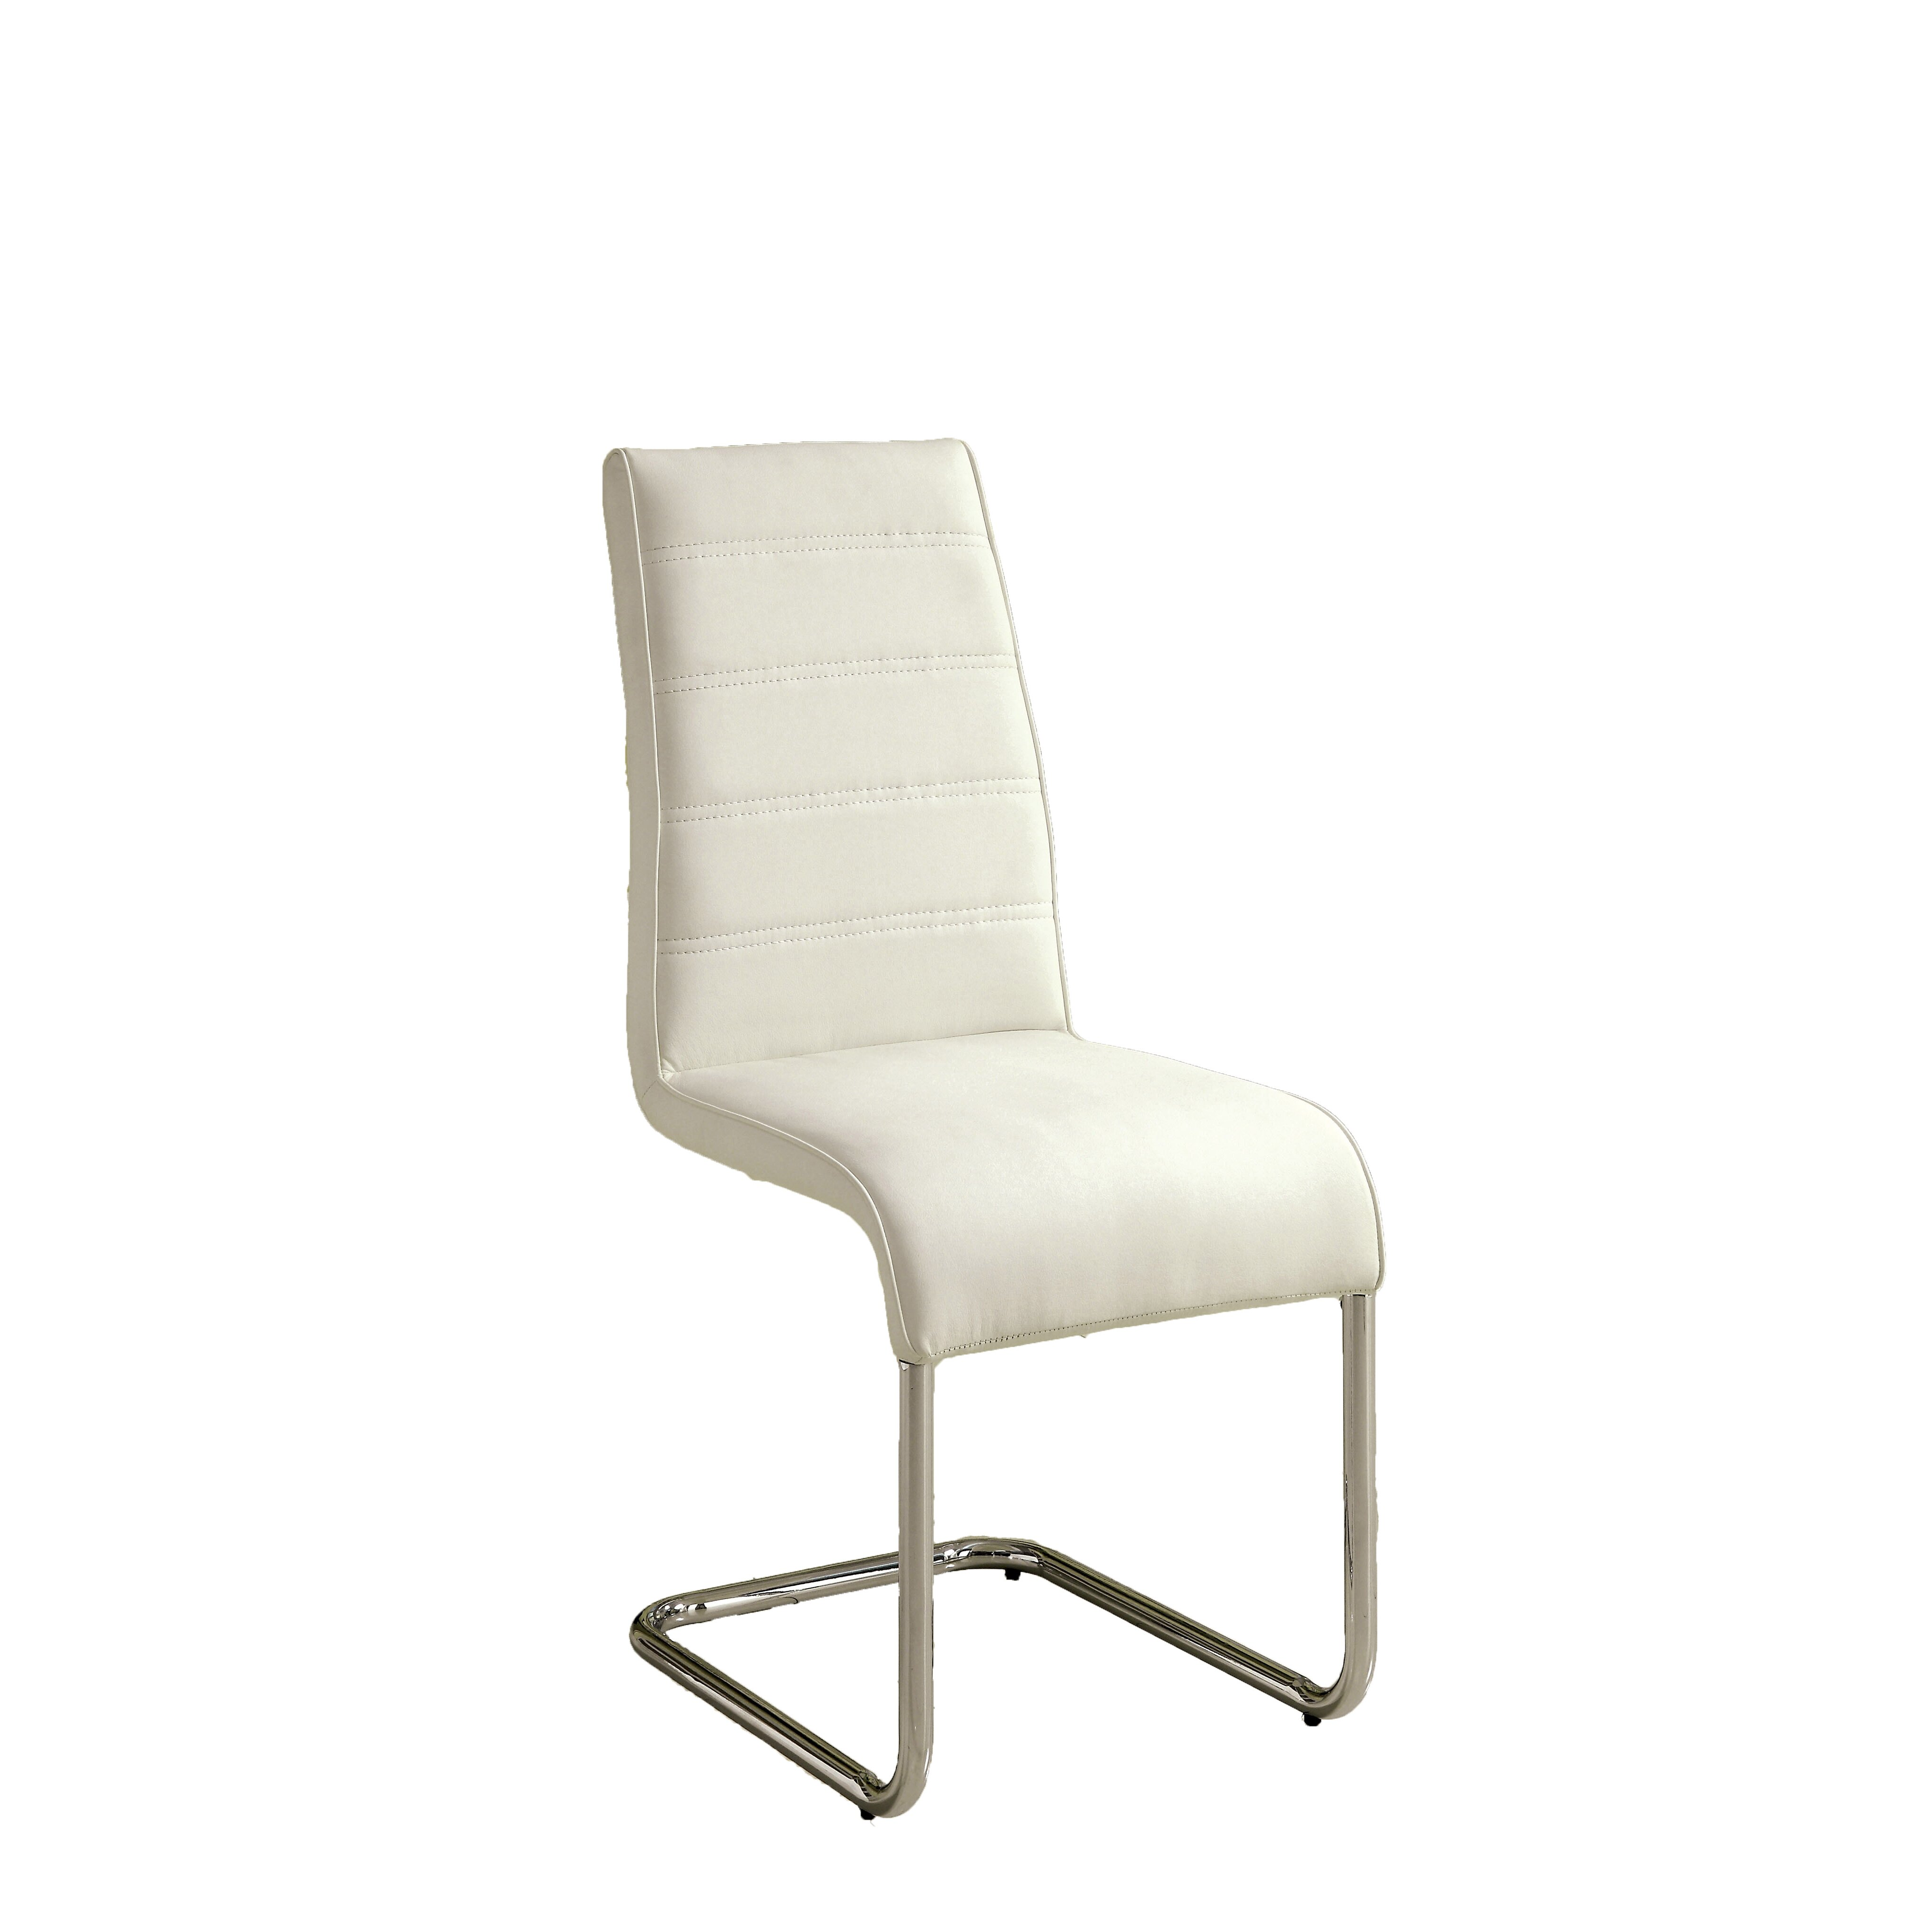 Hokku Designs Monaco Side Chair amp Reviews Wayfair : Monaco2BSide2BChair from www.wayfair.com size 4085 x 4085 jpeg 595kB